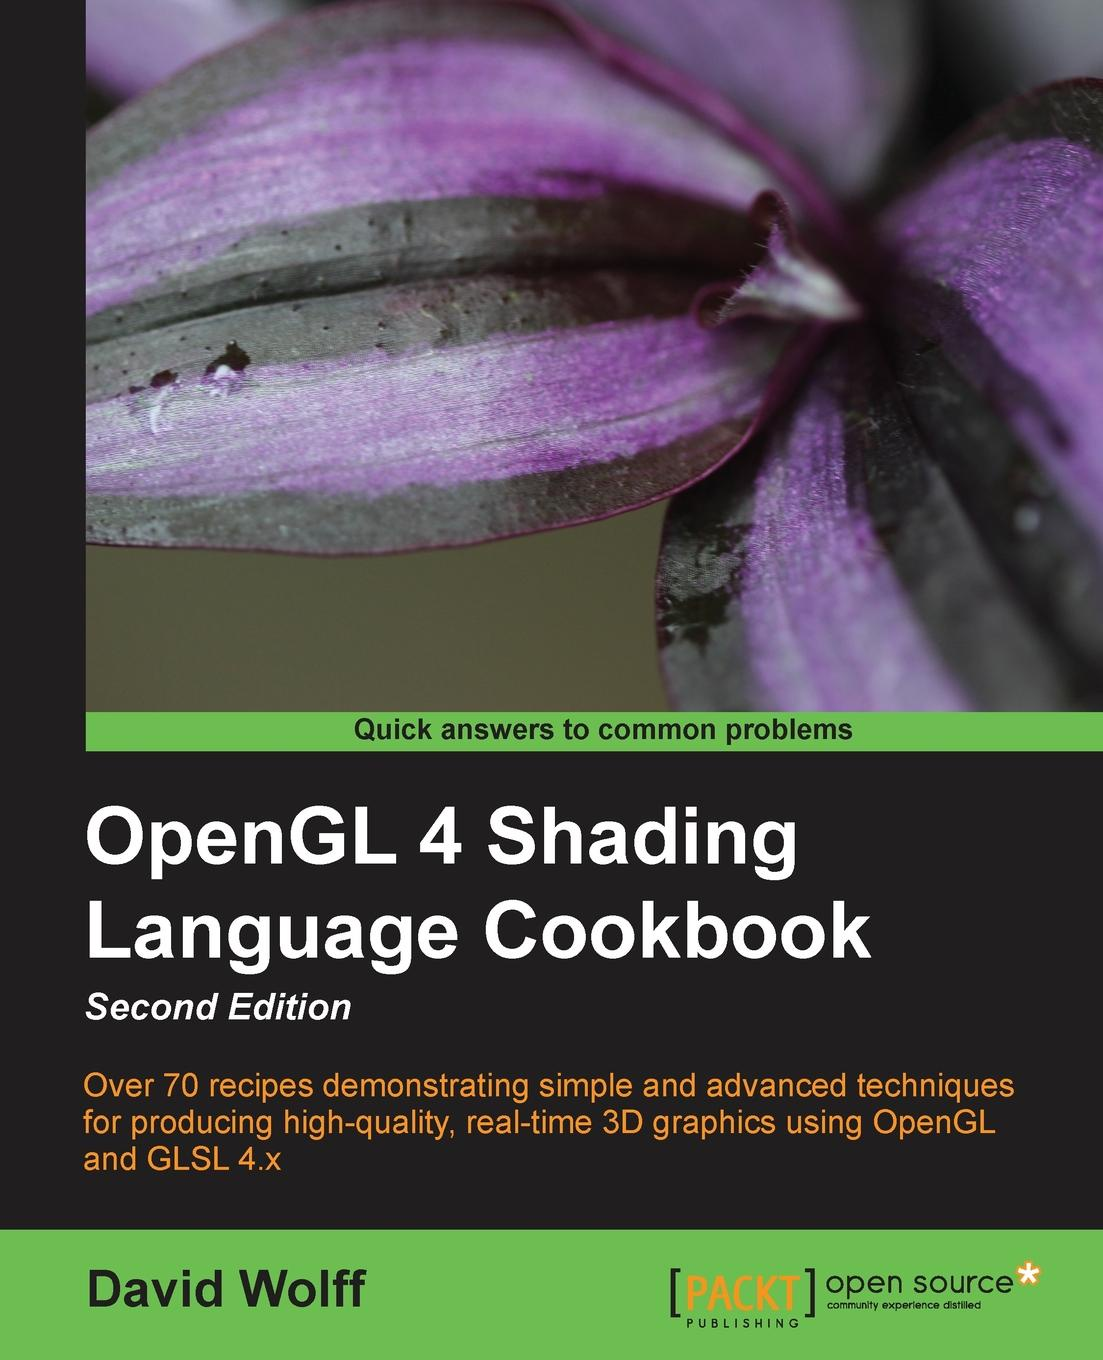 David Wolff OpenGL 4 Shading Language Cookbook, Second Edition